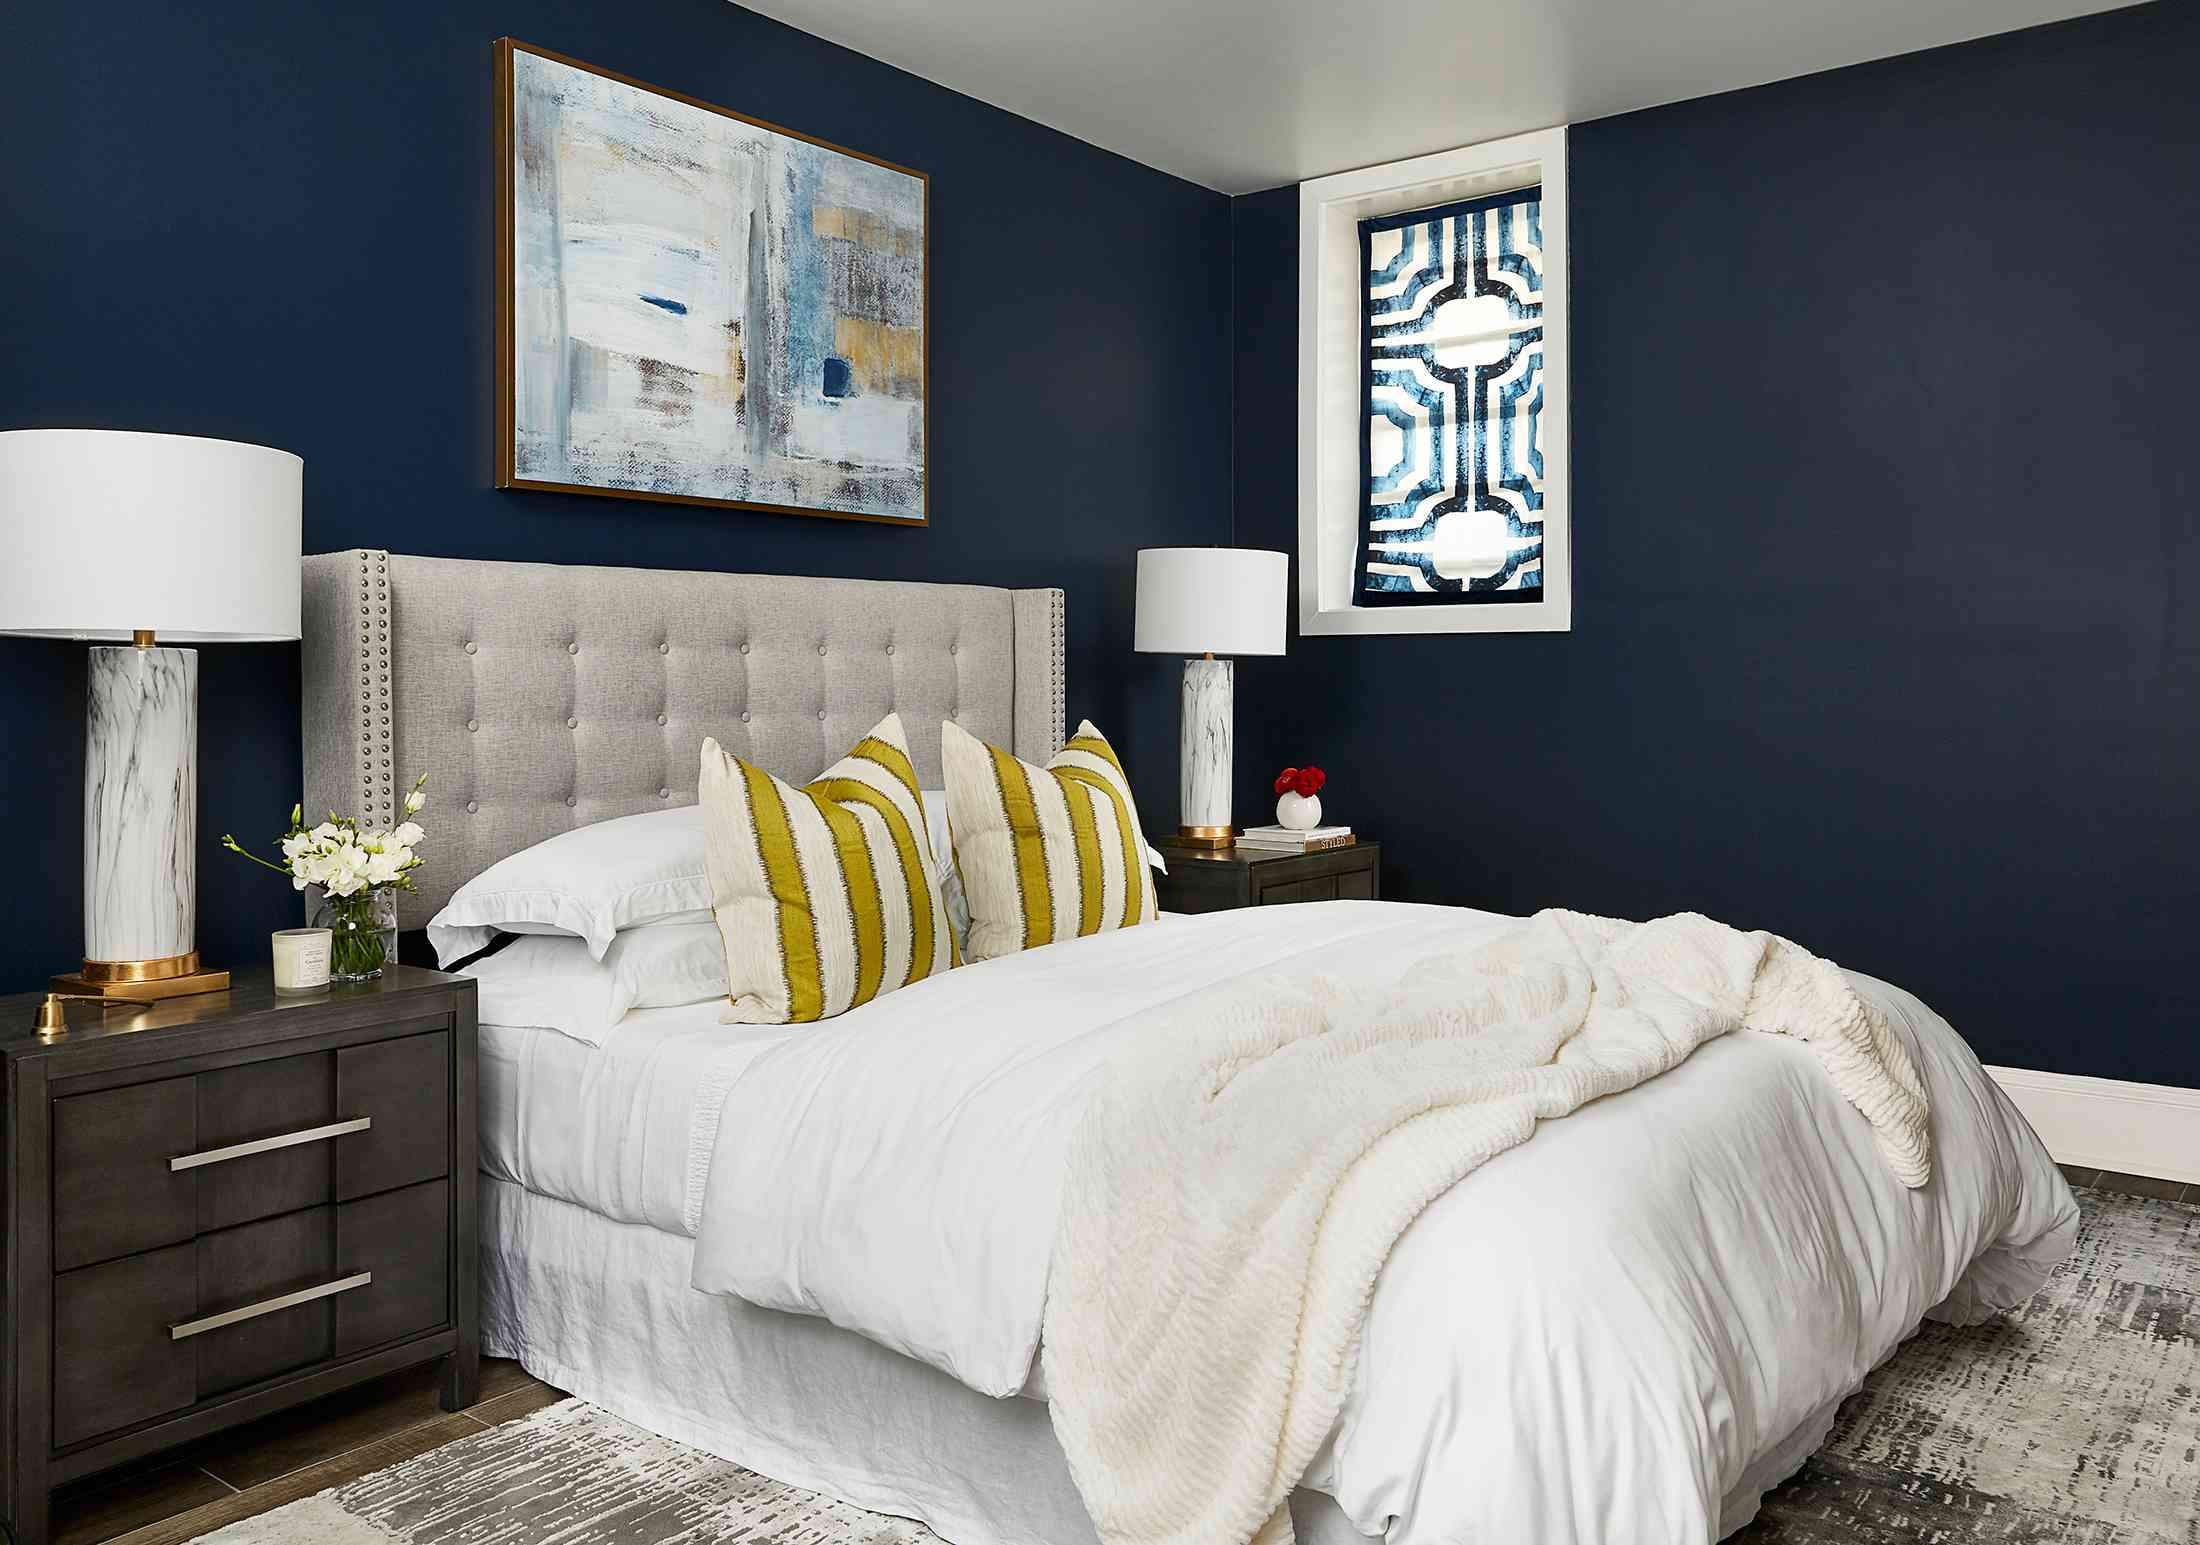 Duke Ellington home tour - bedroom with navy blue walls and comfy white bedding